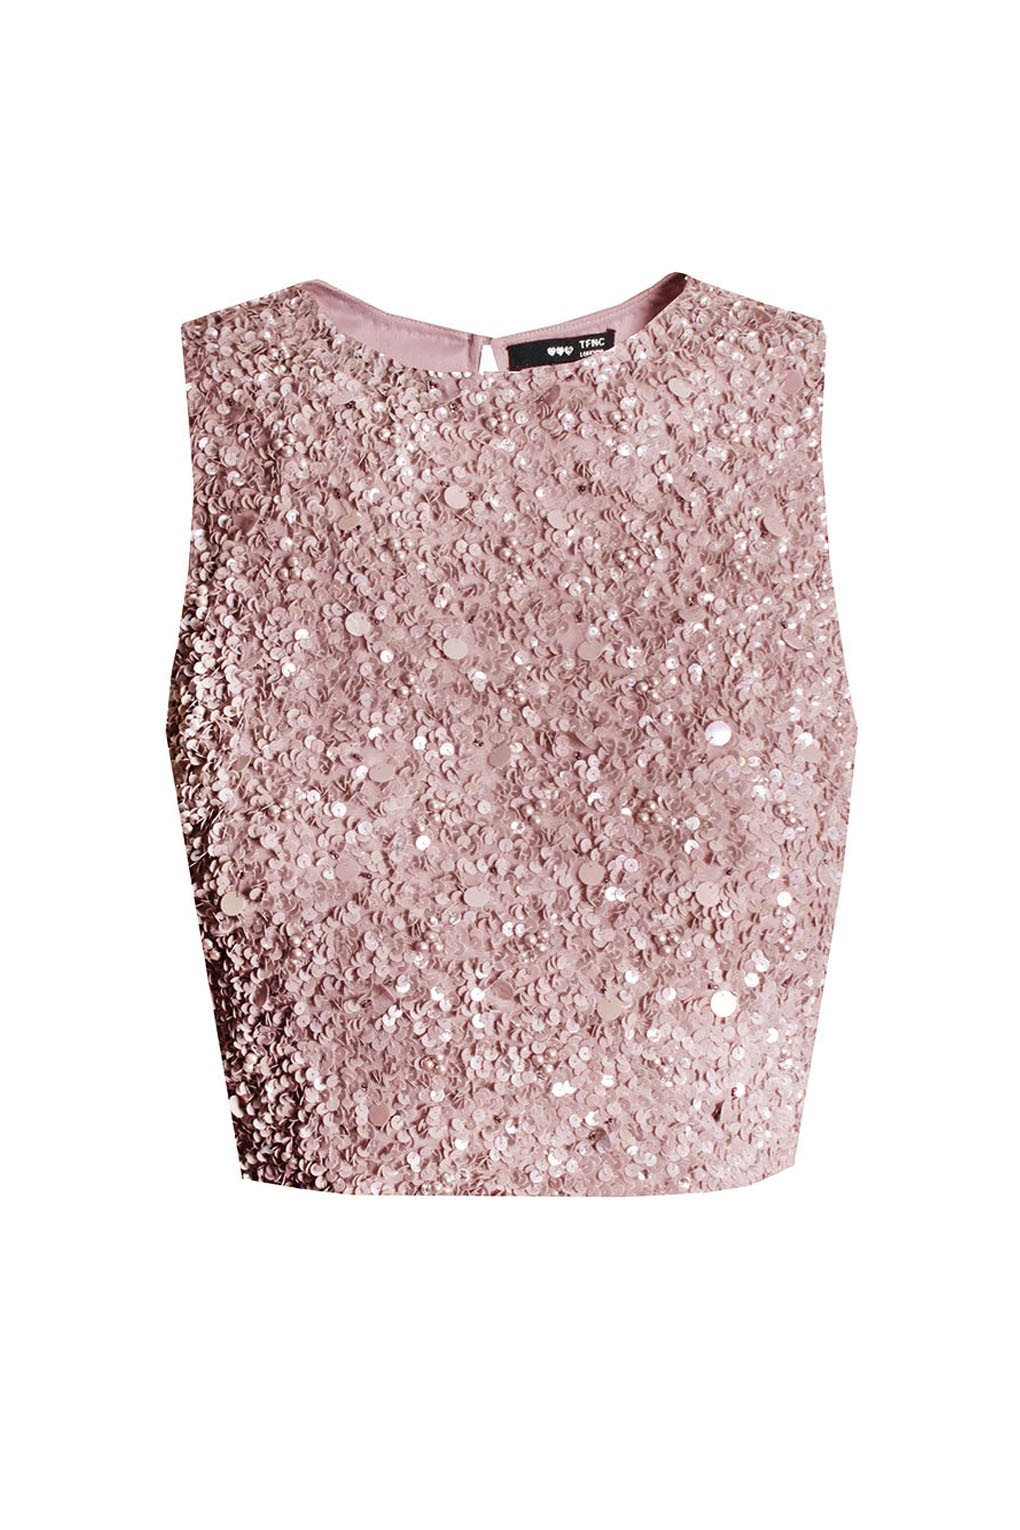 Lace Amp Beads Picasso Pink Sequin Top Lace Amp Beads Top